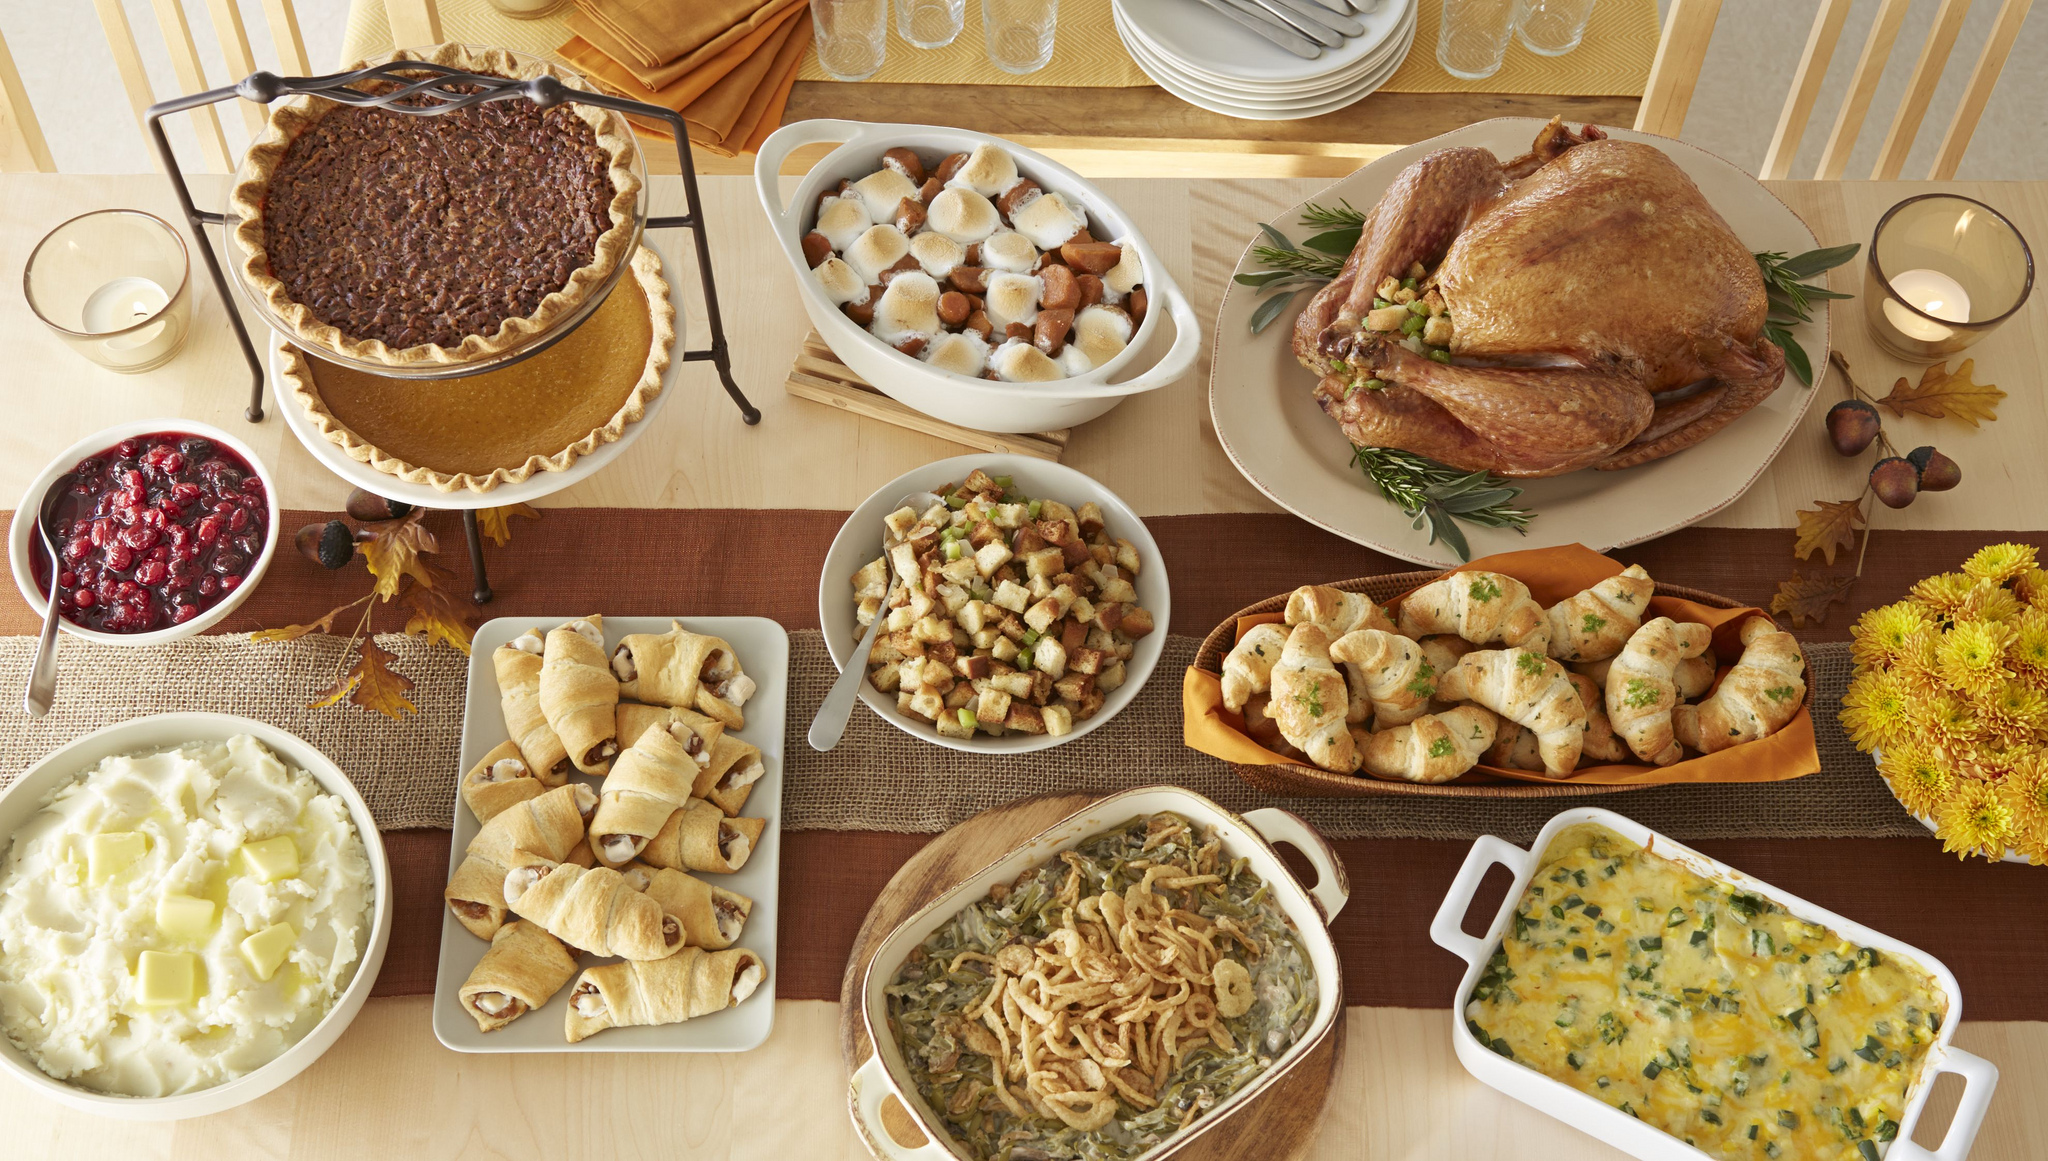 23 Healthy Recipes For Your Thanksgiving Meal